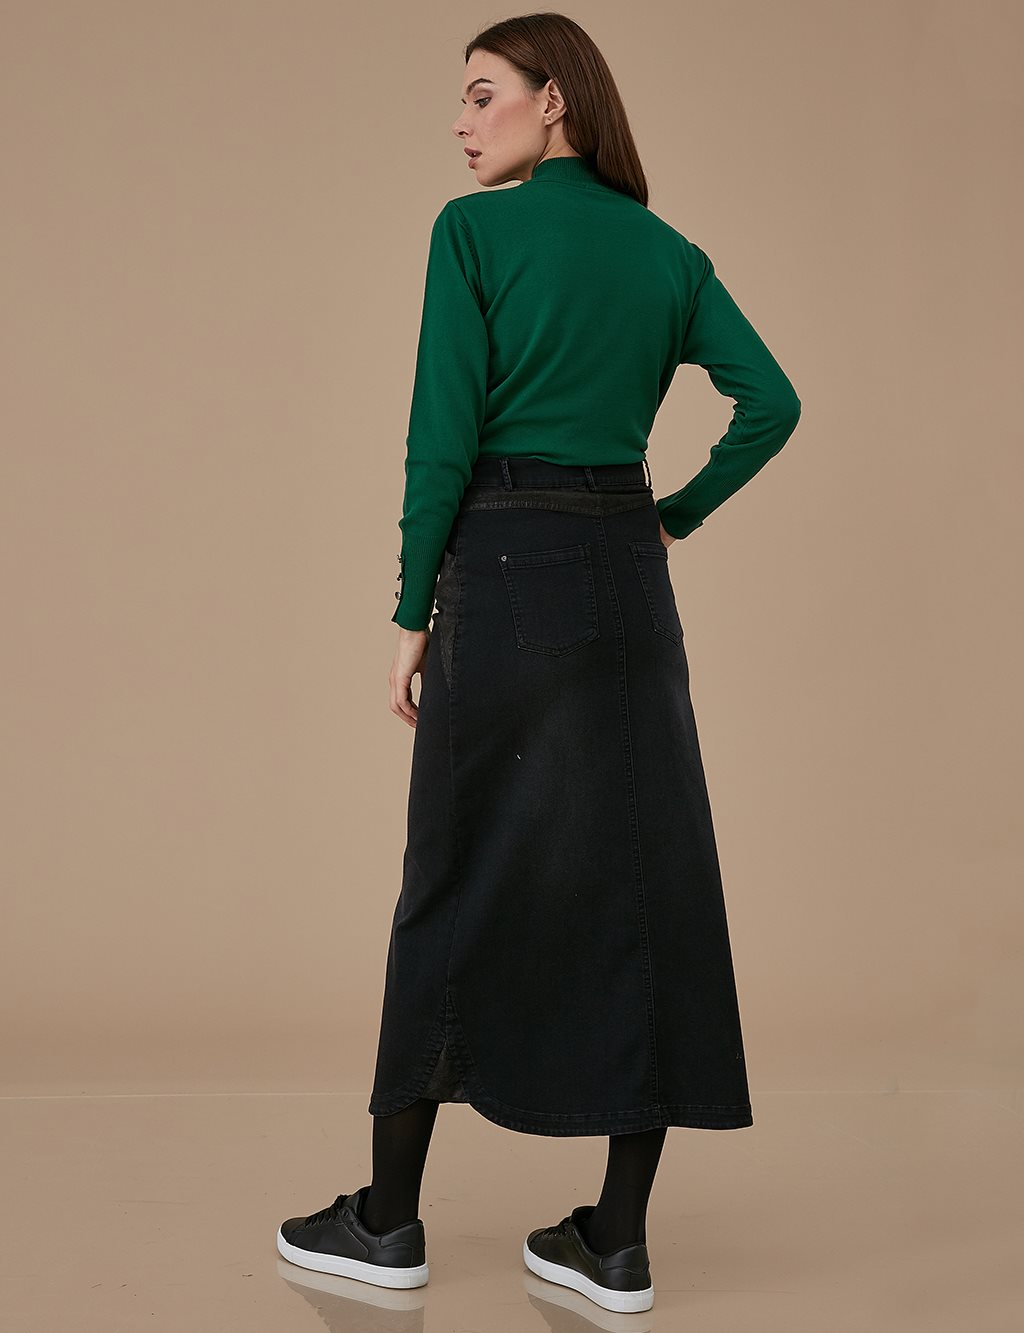 Detailed Denim Skirt A9 12014 Black